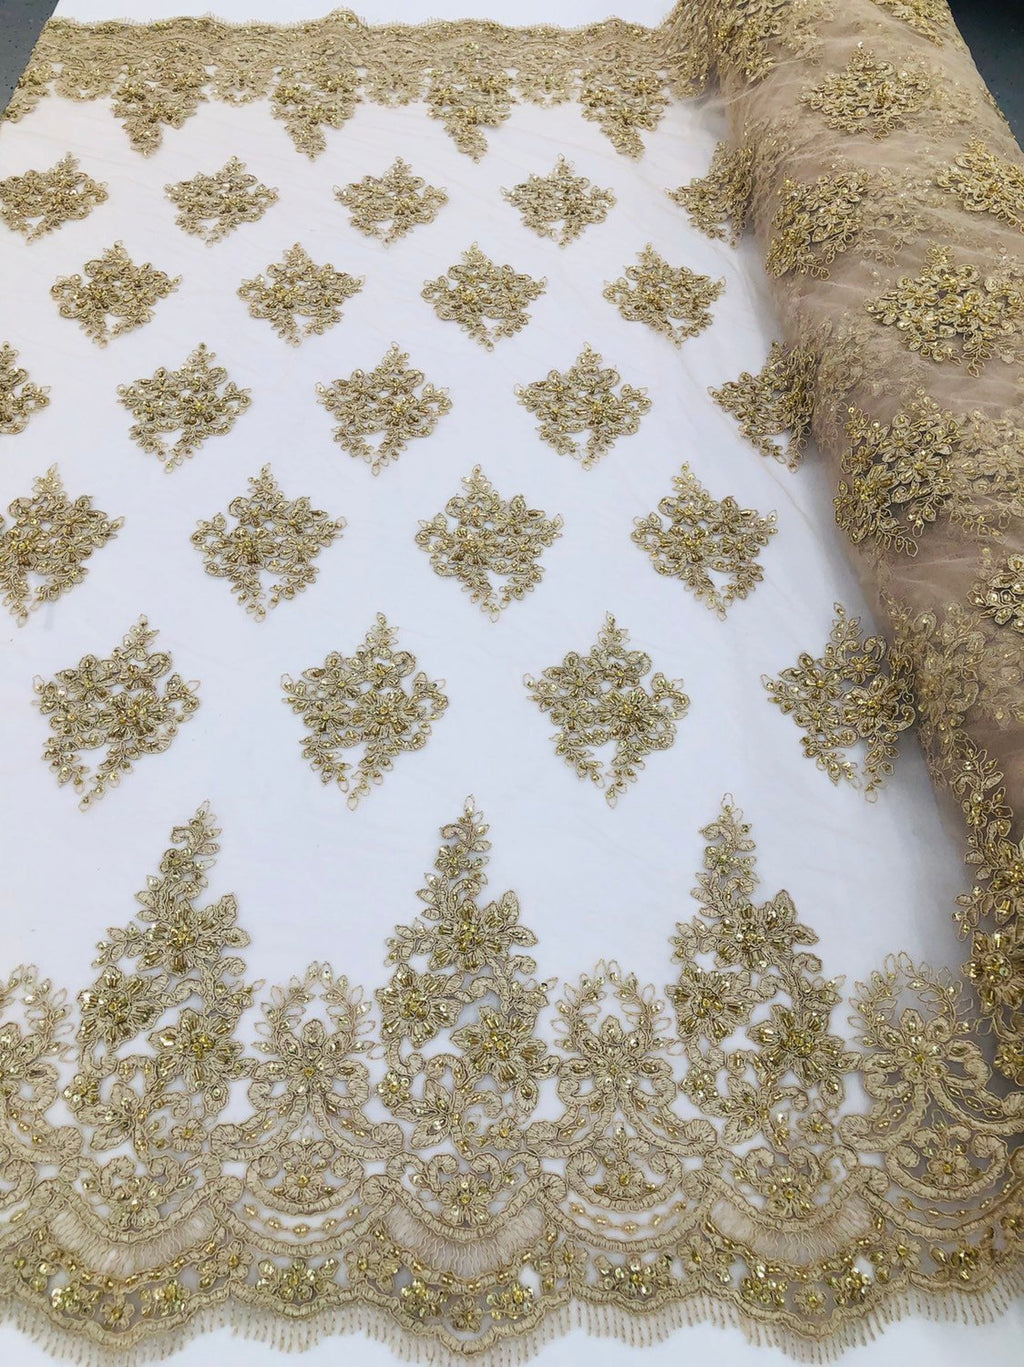 Champagne Beaded Fabric, Lace Fabric By The Yard - Embroider Beaded On A Mesh For Bridal Veil Flower-Floral Mesh Dress Top Wedding Decor - KINGDOM OF FABRICS